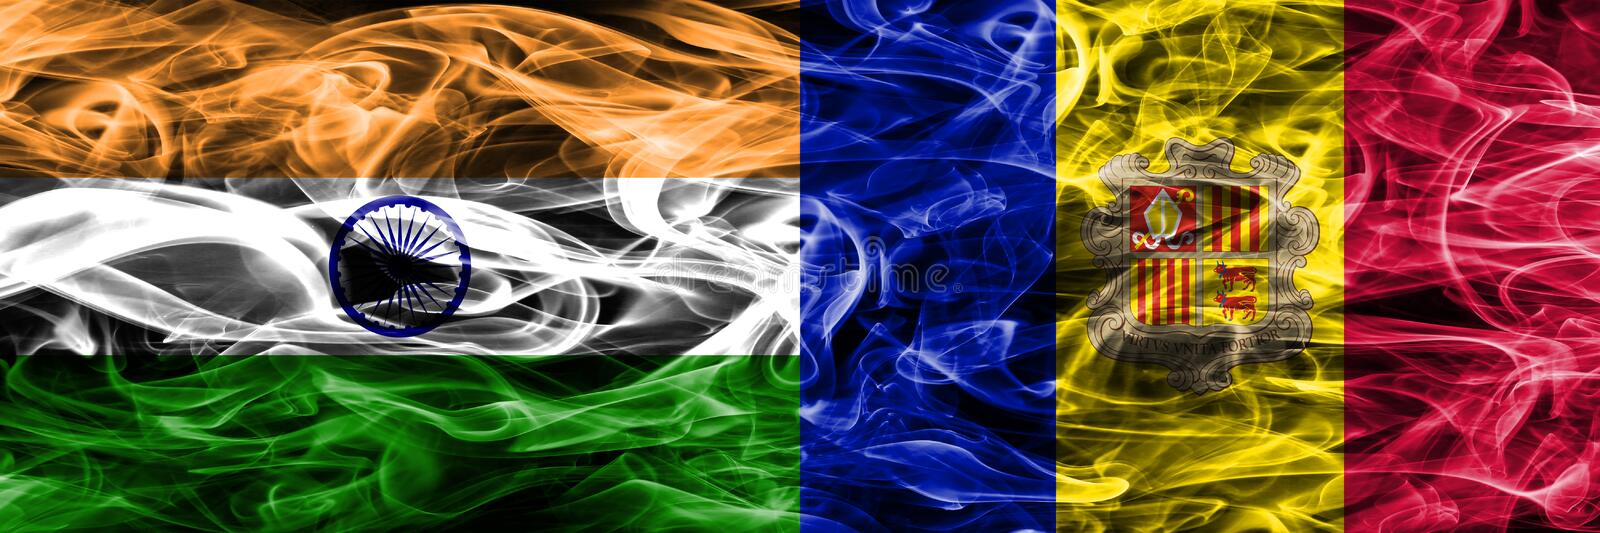 India vs Andorra smoke flags placed side by side.  stock illustration